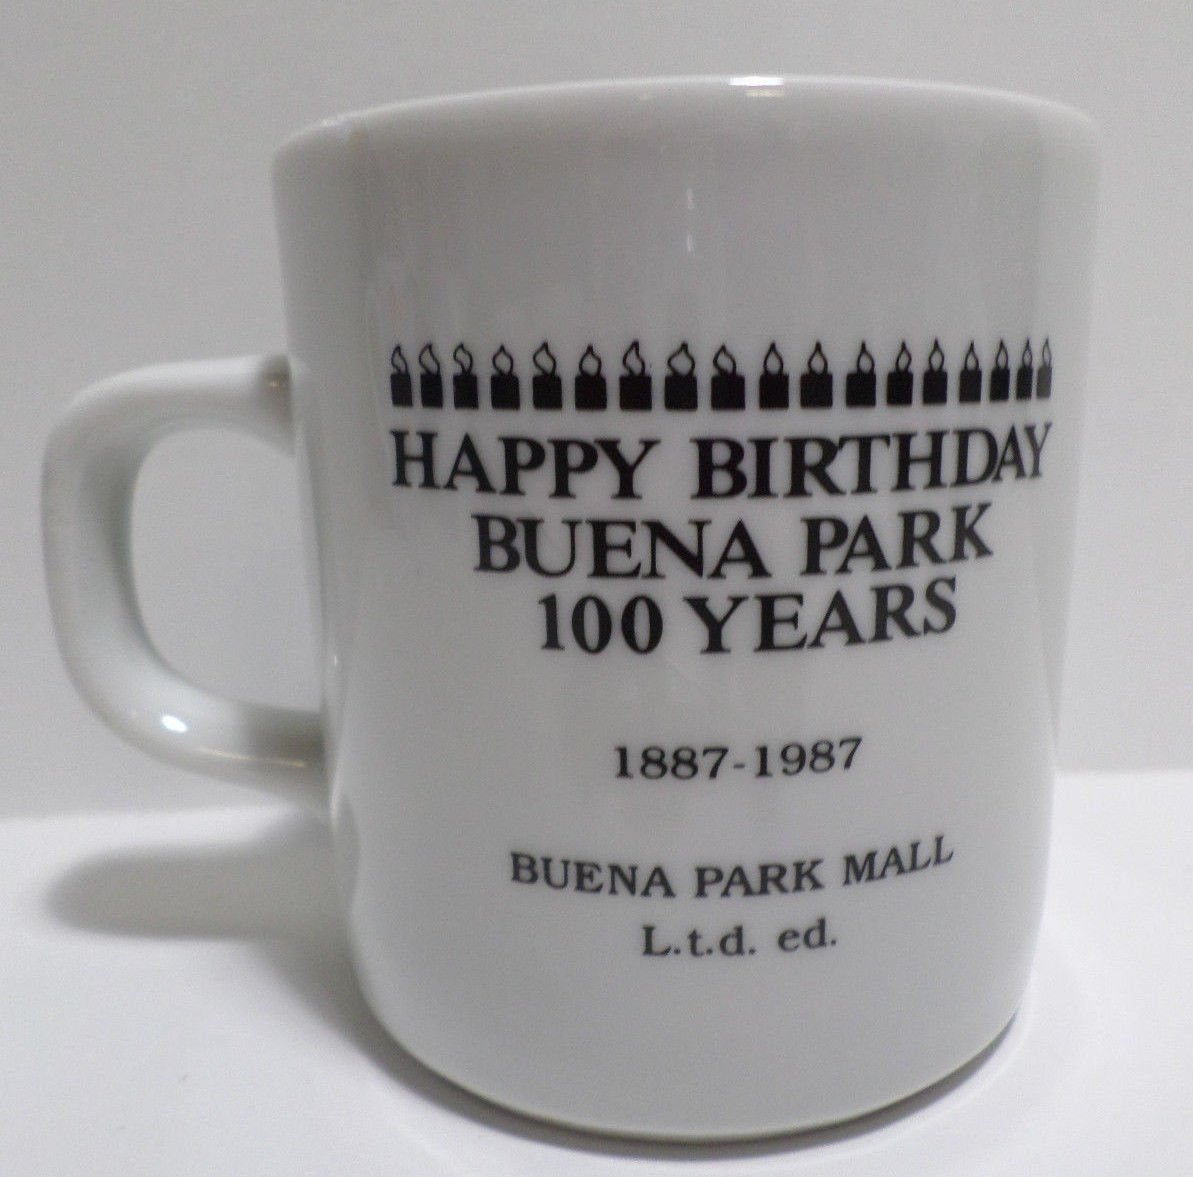 Collector Coffee Mug Happy Birthday Buena Park 100 years South Pacific Depot